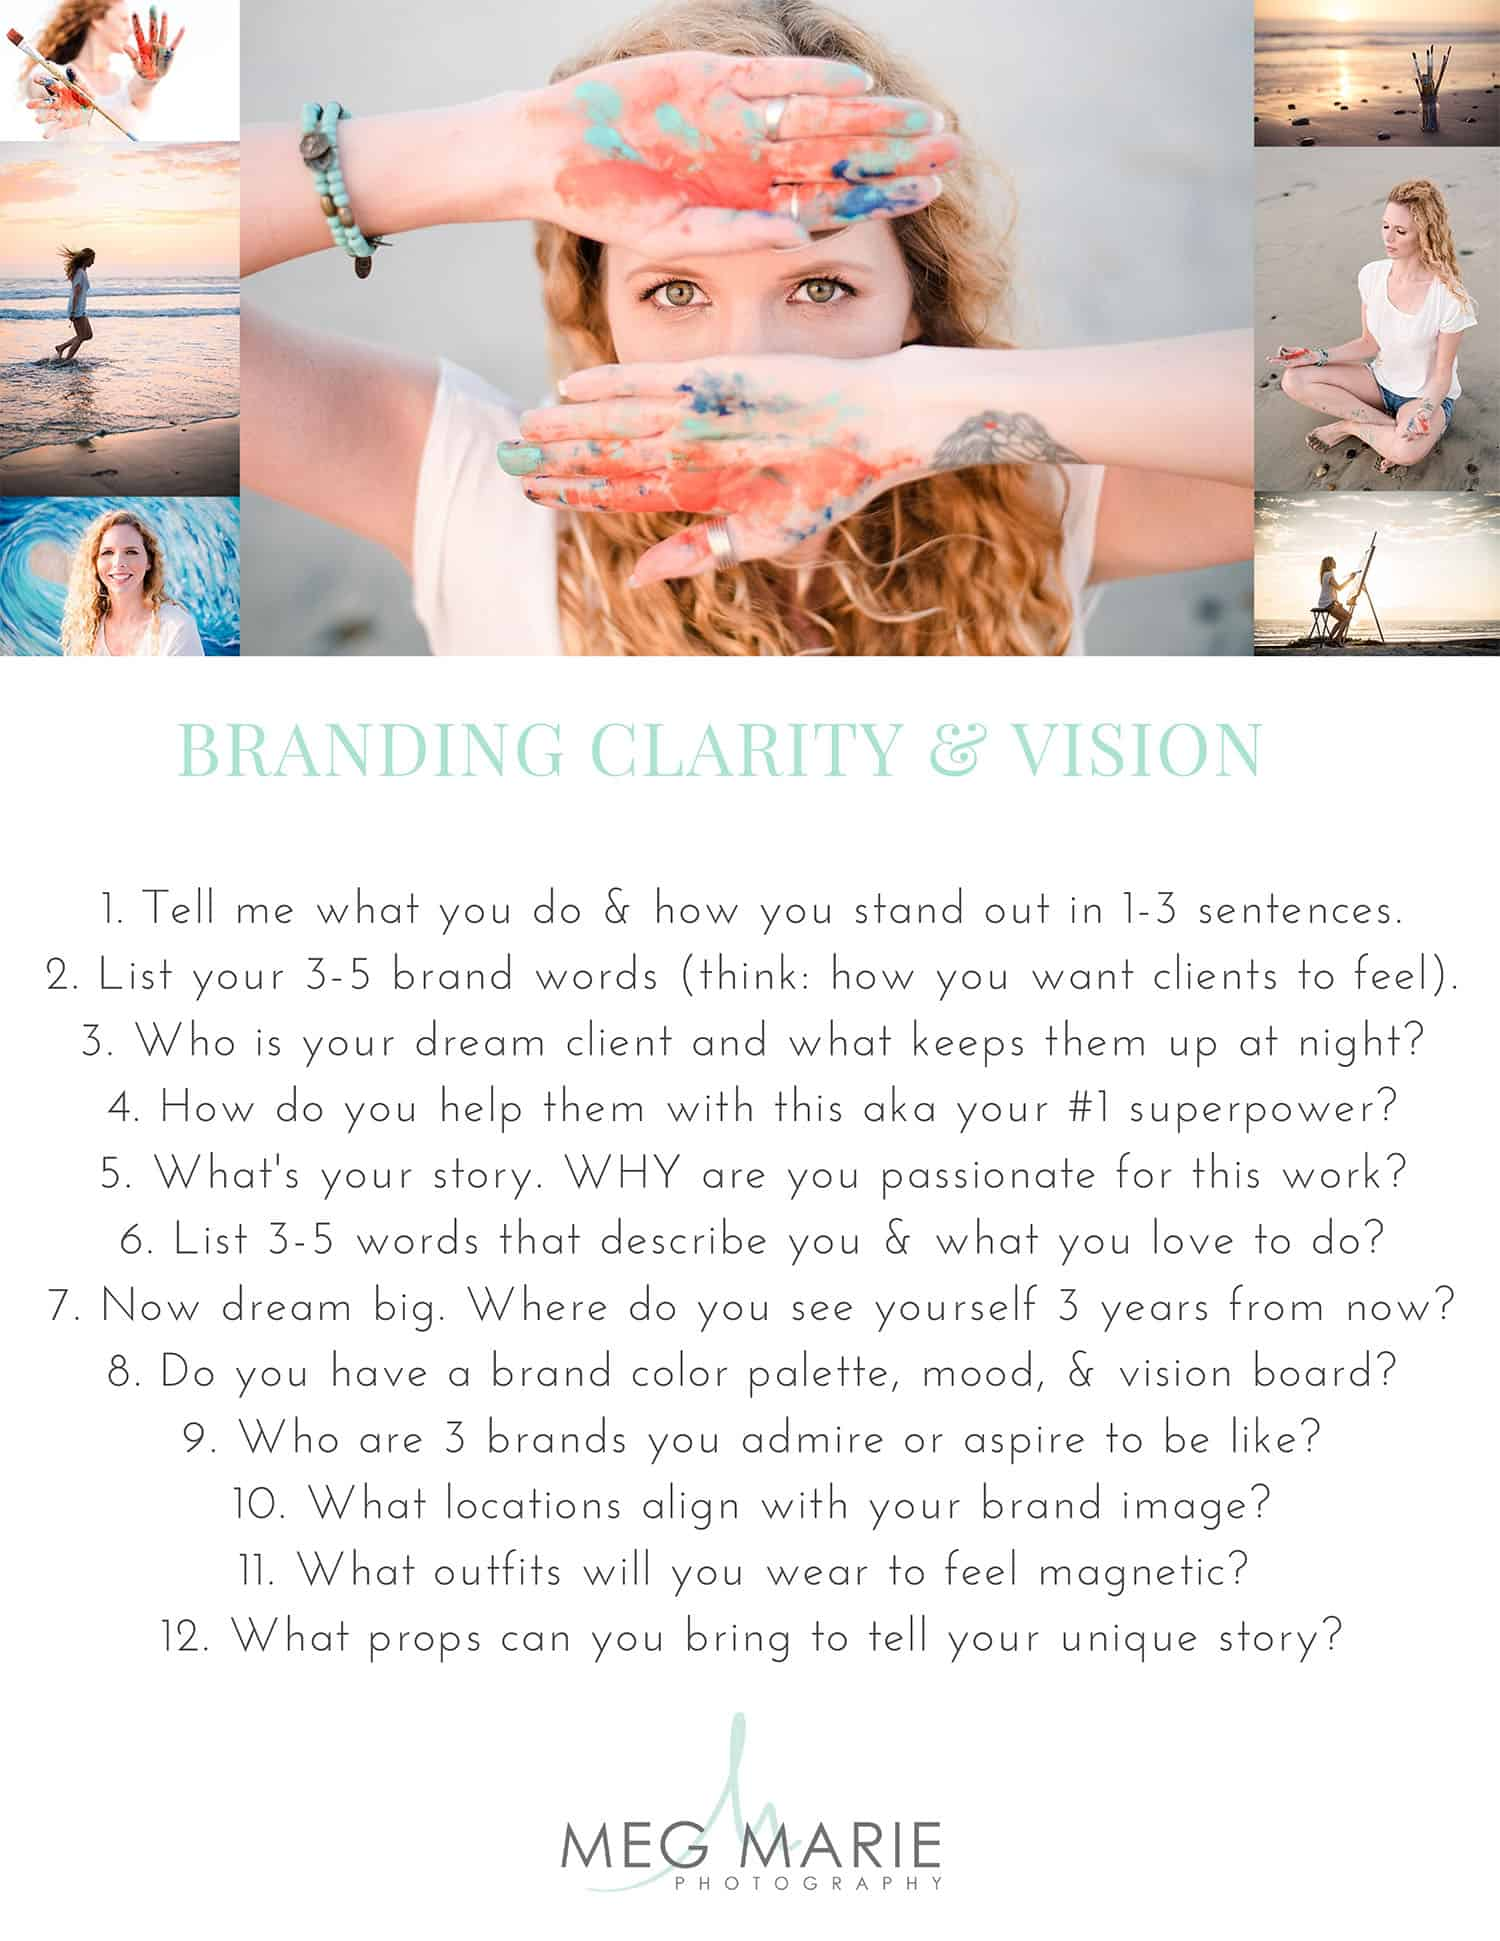 Meg Marie's brand questionnaire for headshots and brand photography clients